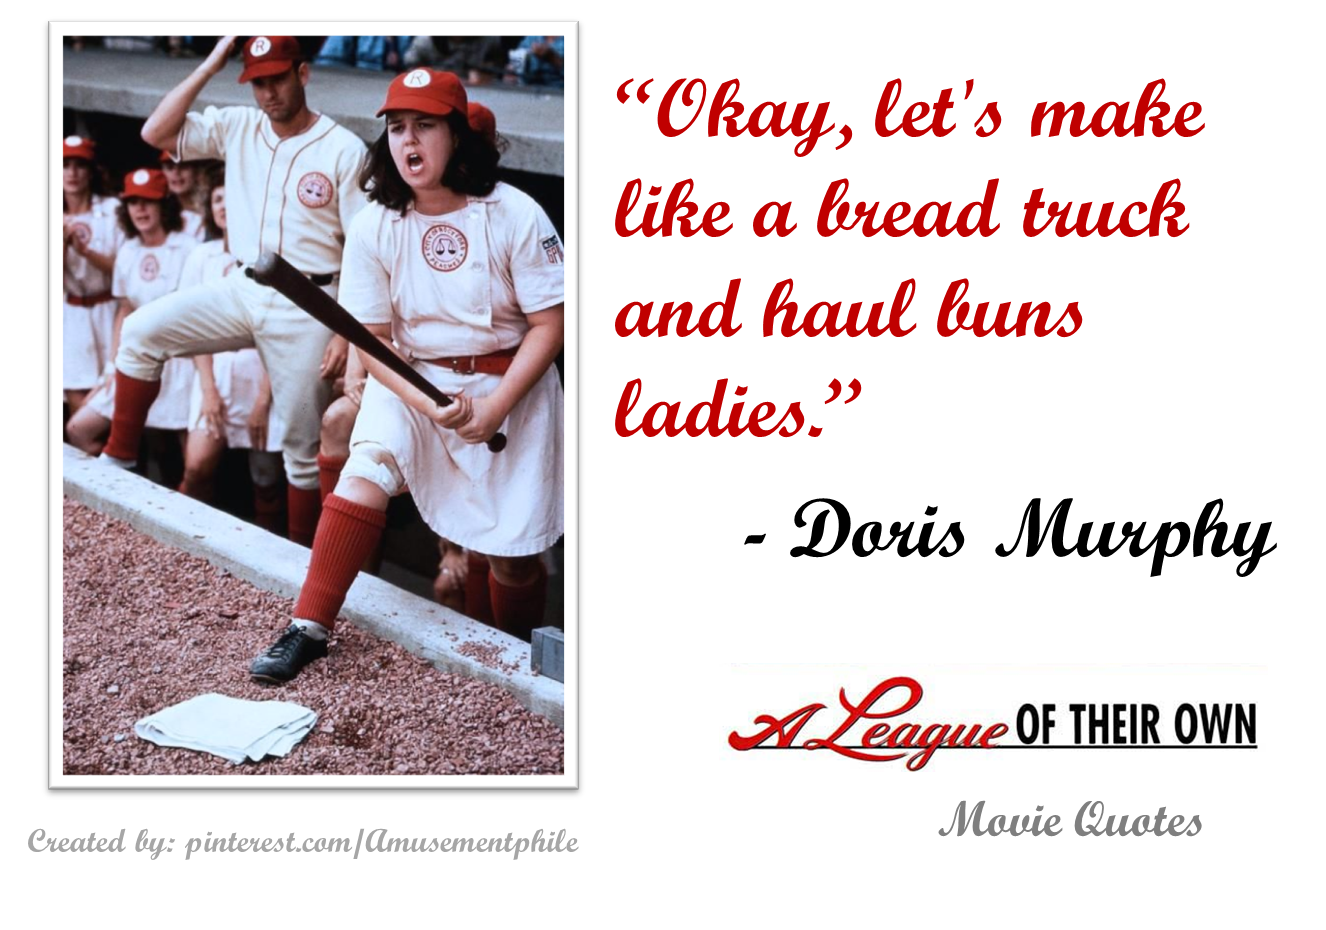 Okay Let S Make Like A League Of Their Own 1992 Movie Quotes Moviequotes Leagueoftheirown 90smovies Funny Girl Movie Movie Quotes Girl Humor